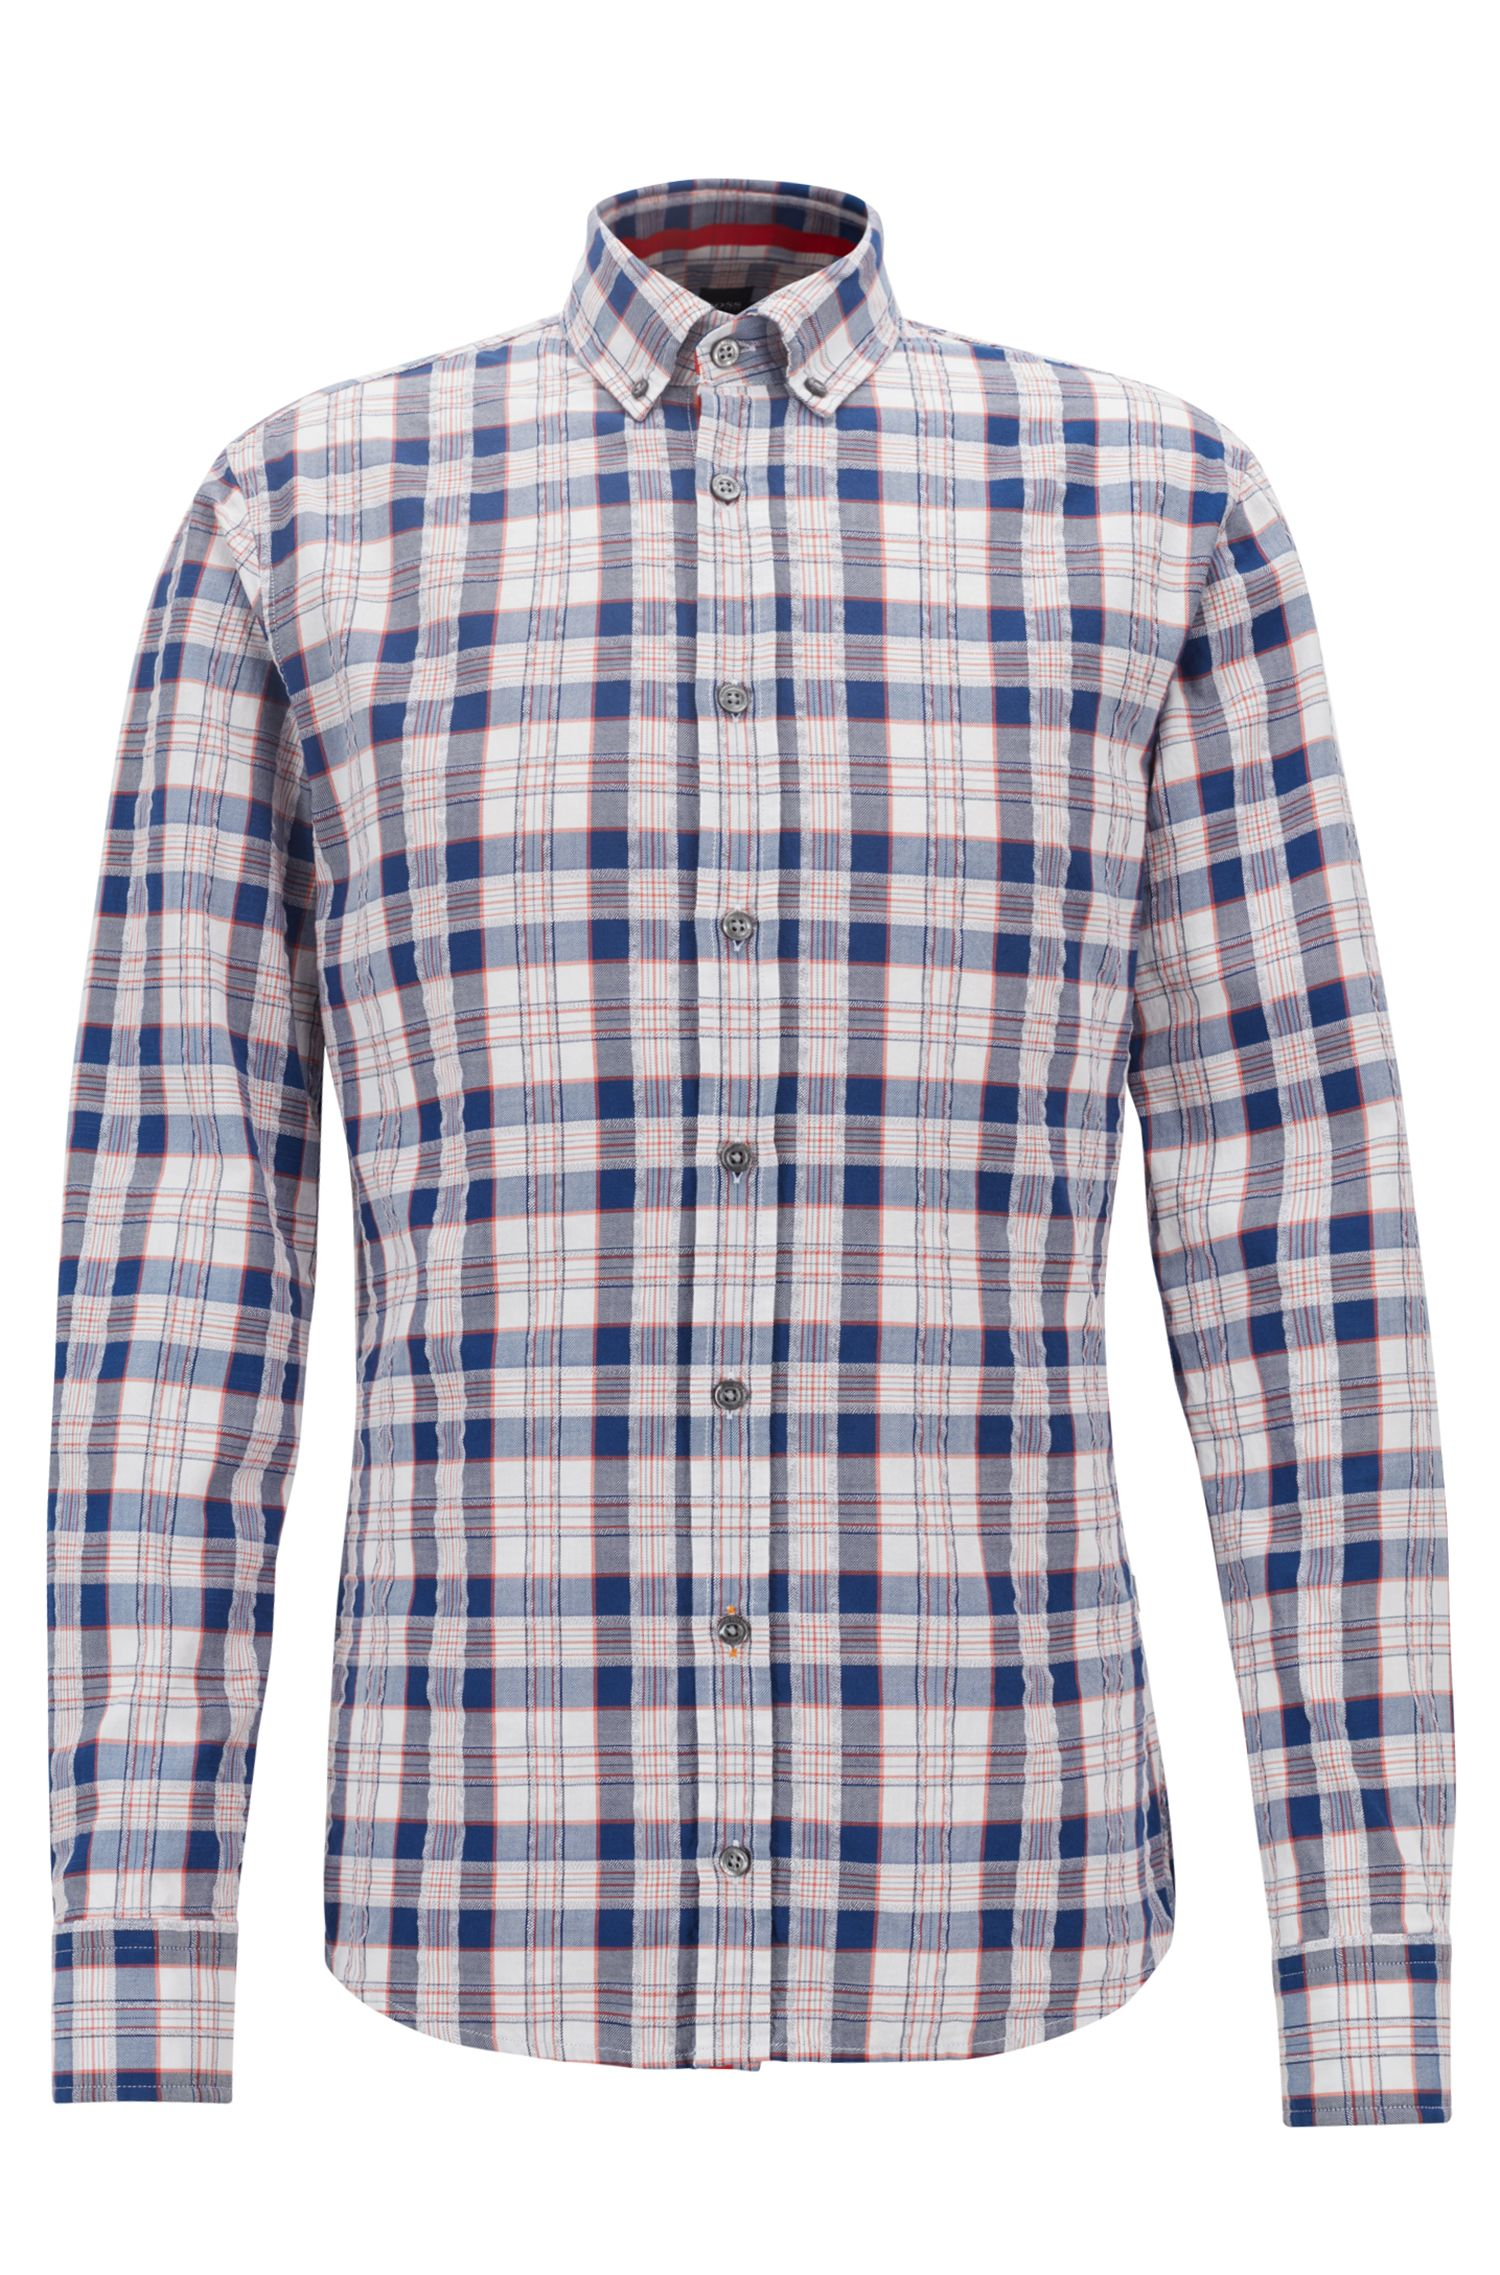 Chemise Slim Fit en twill de coton seersucker à carreaux, Bleu